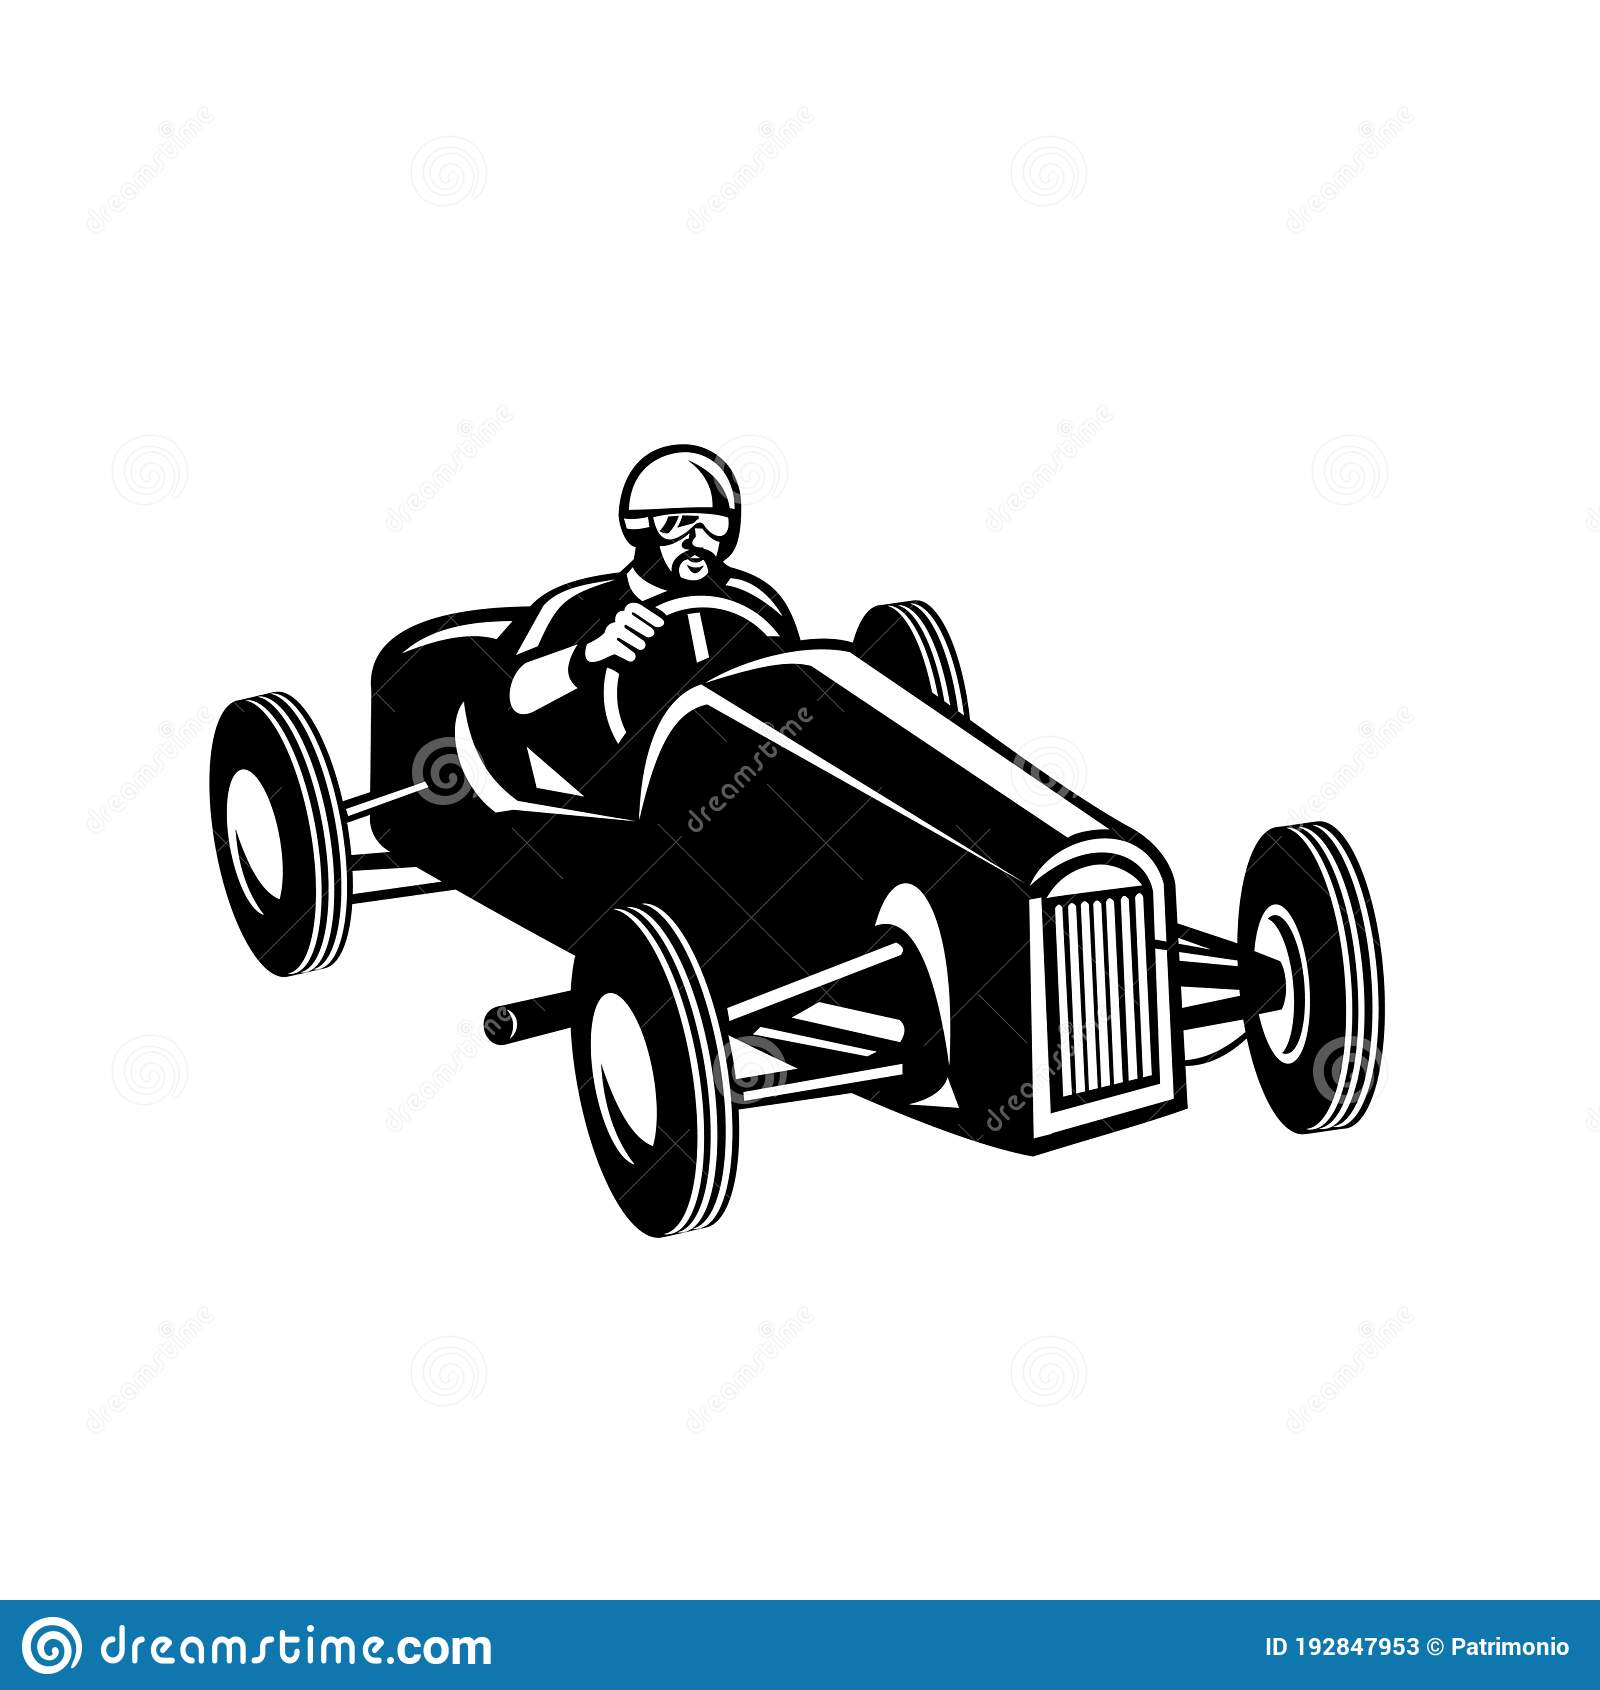 Racing Driver Driving Vintage Race Car Retro Black And White Stock Vector Illustration Of Automobile Style 192847953